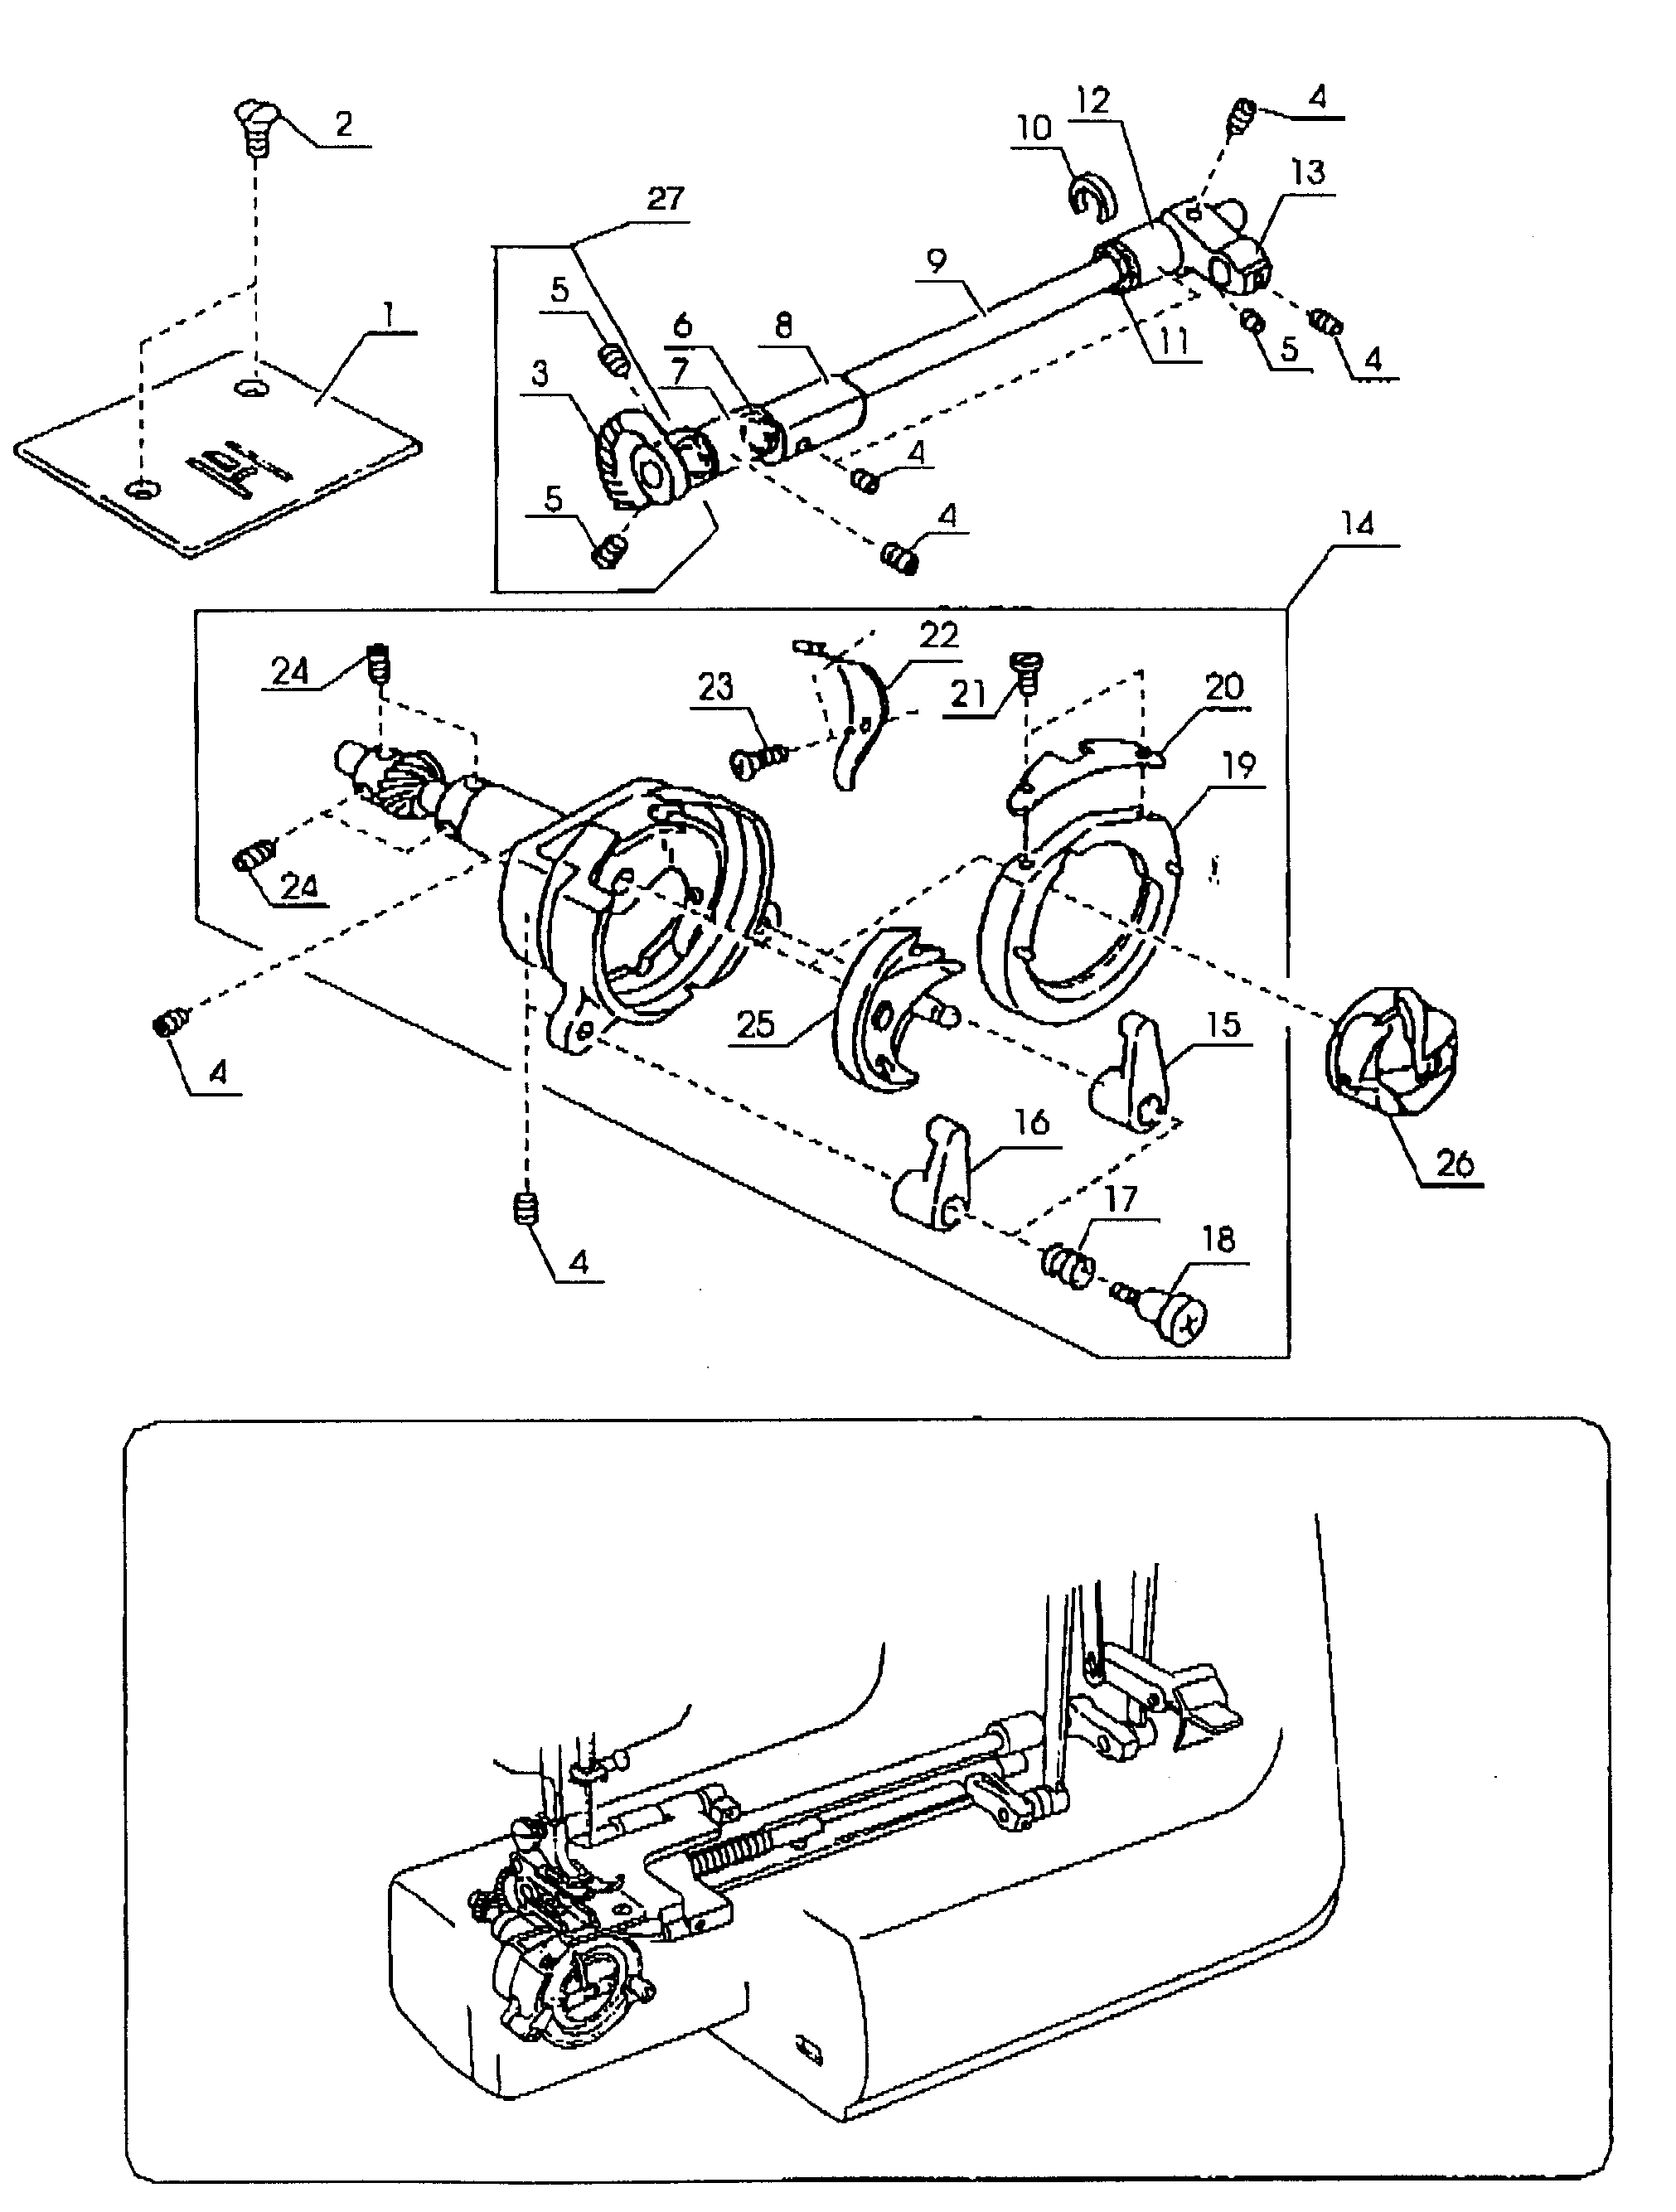 SEWING MACHINE Diagram & Parts List for Model 38515516000